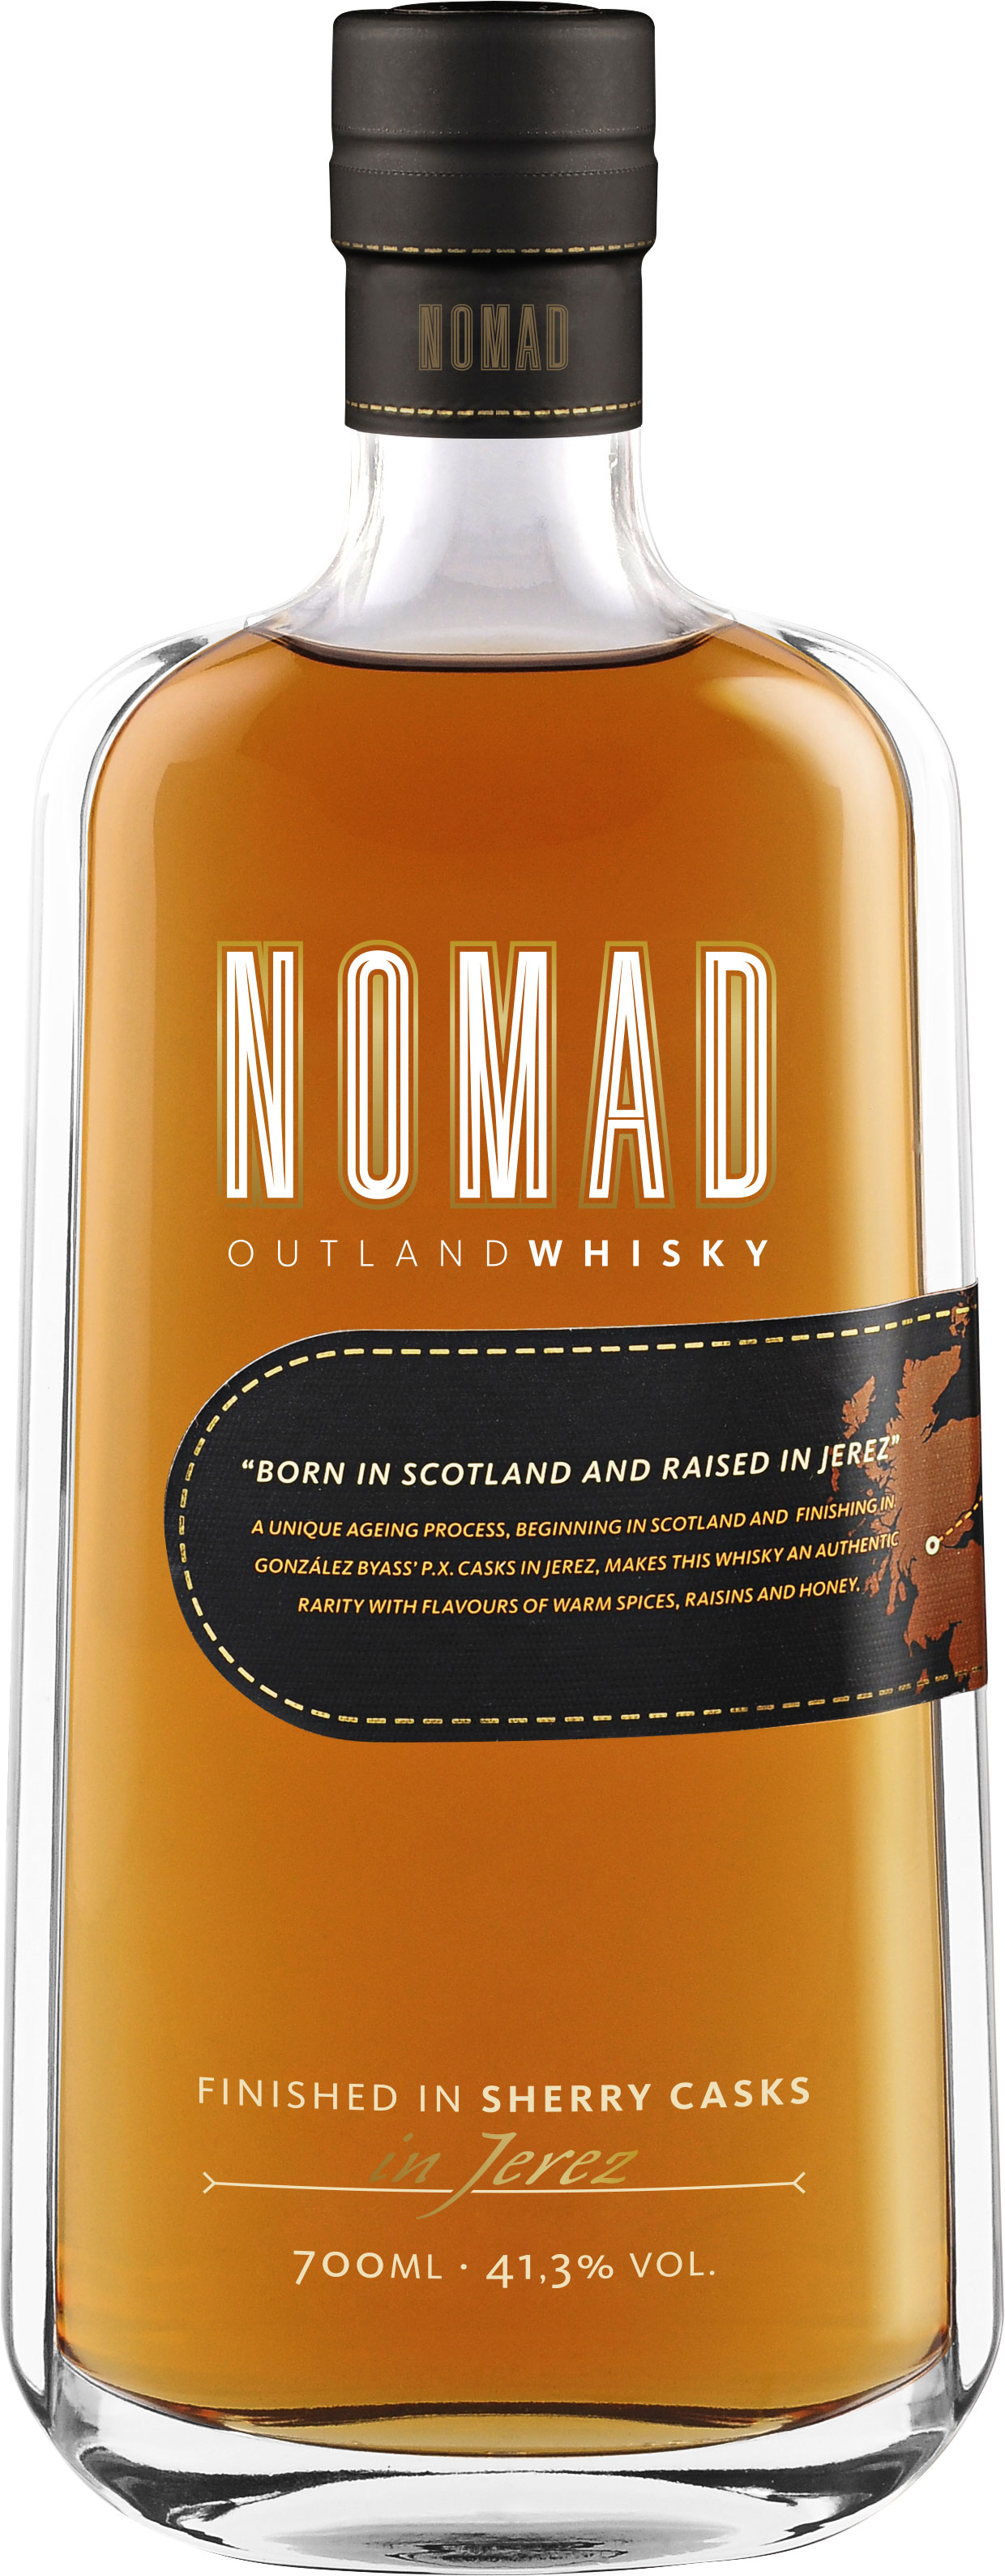 Nomad - Outland Whisky 70cl Bottle